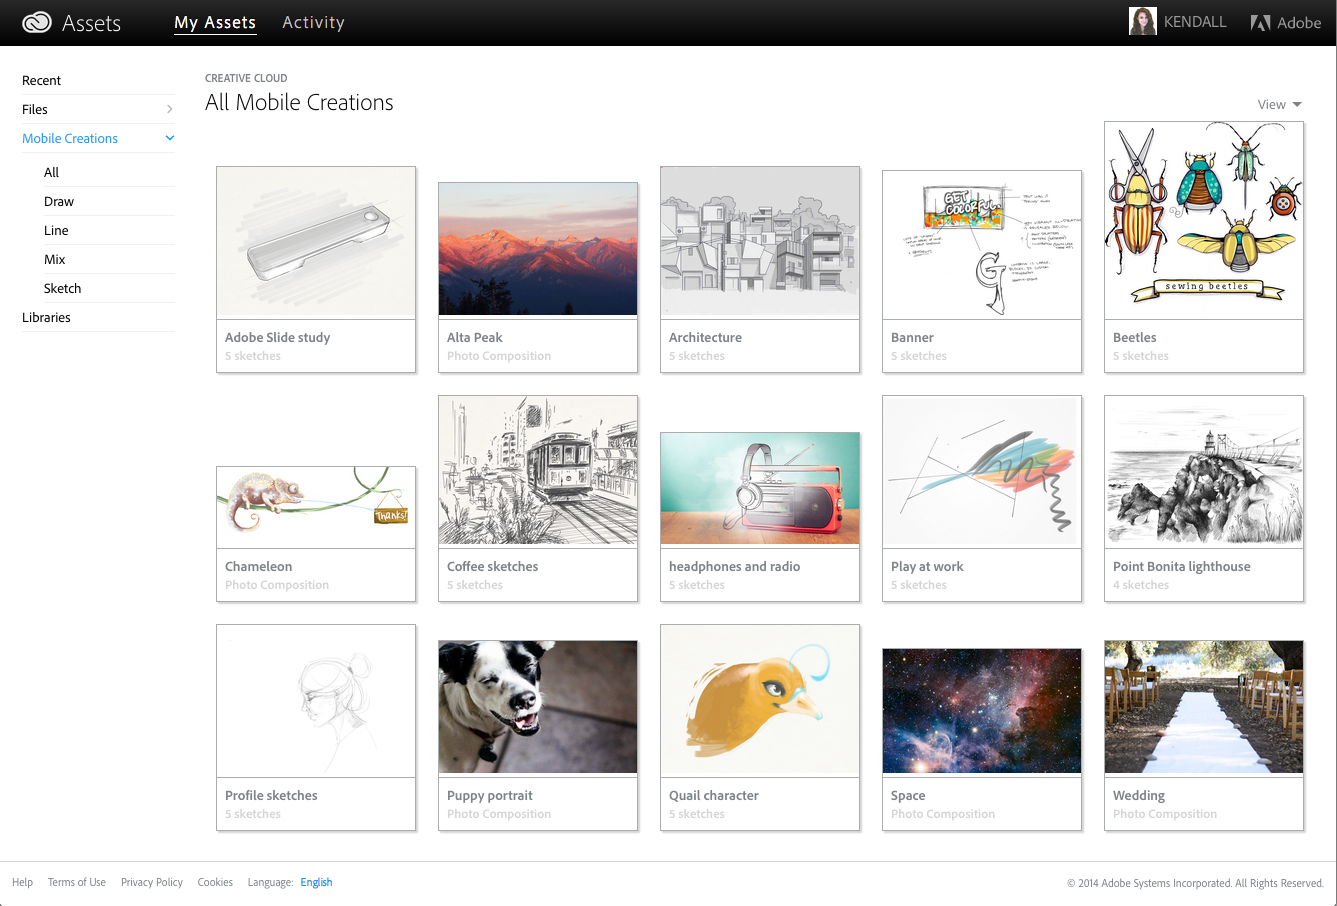 Preview the mobile creations synced to your Creative Cloud account